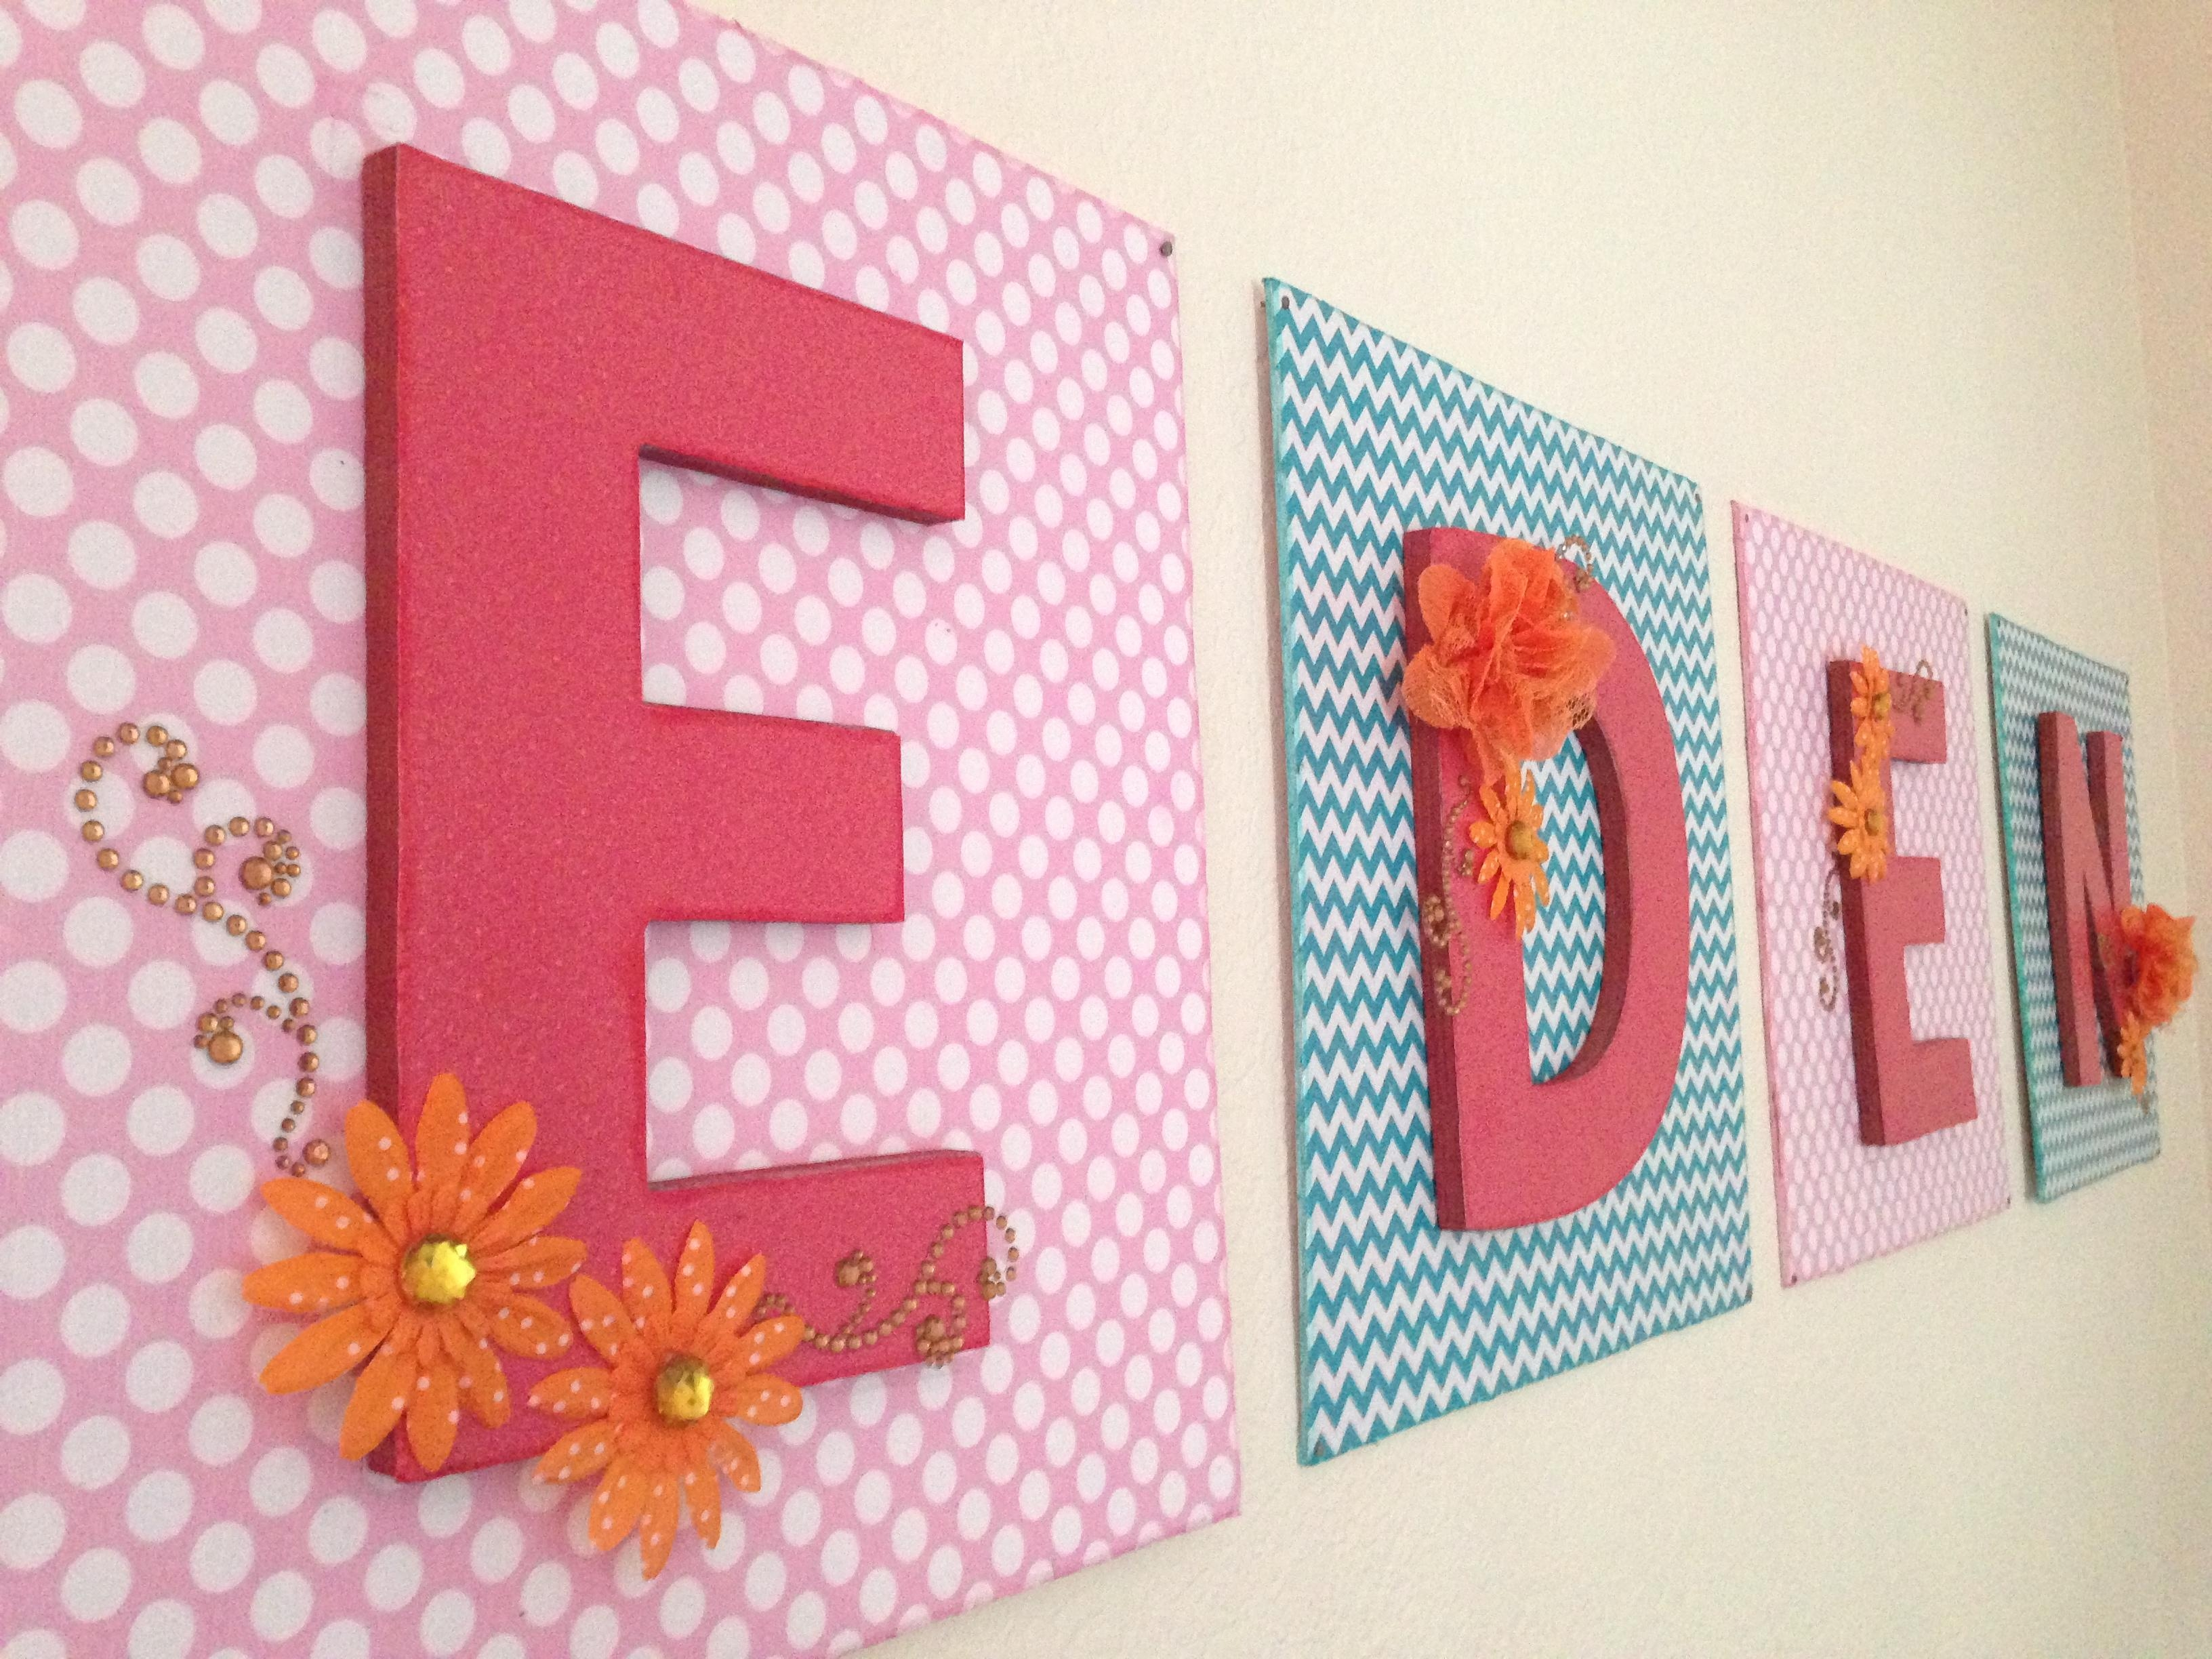 Baby Name Art Simply Simple Name Wall Art – Home Decor Ideas Throughout Baby Name Wall Art (Image 2 of 20)